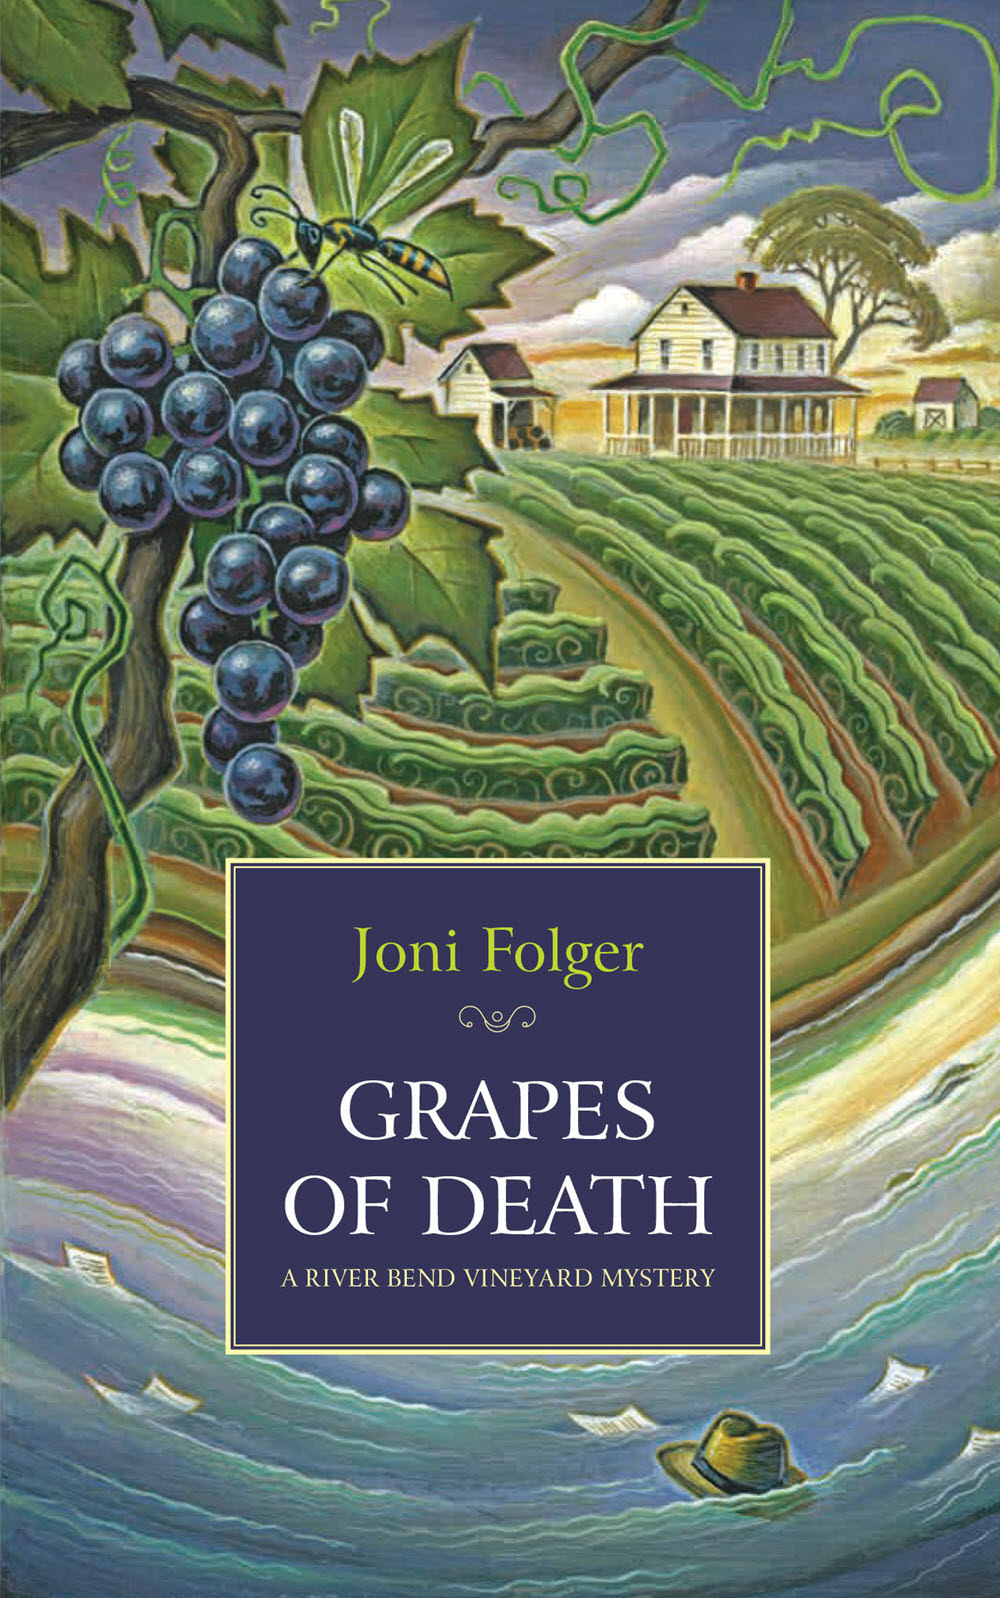 Grapes of Death - TZ515-a